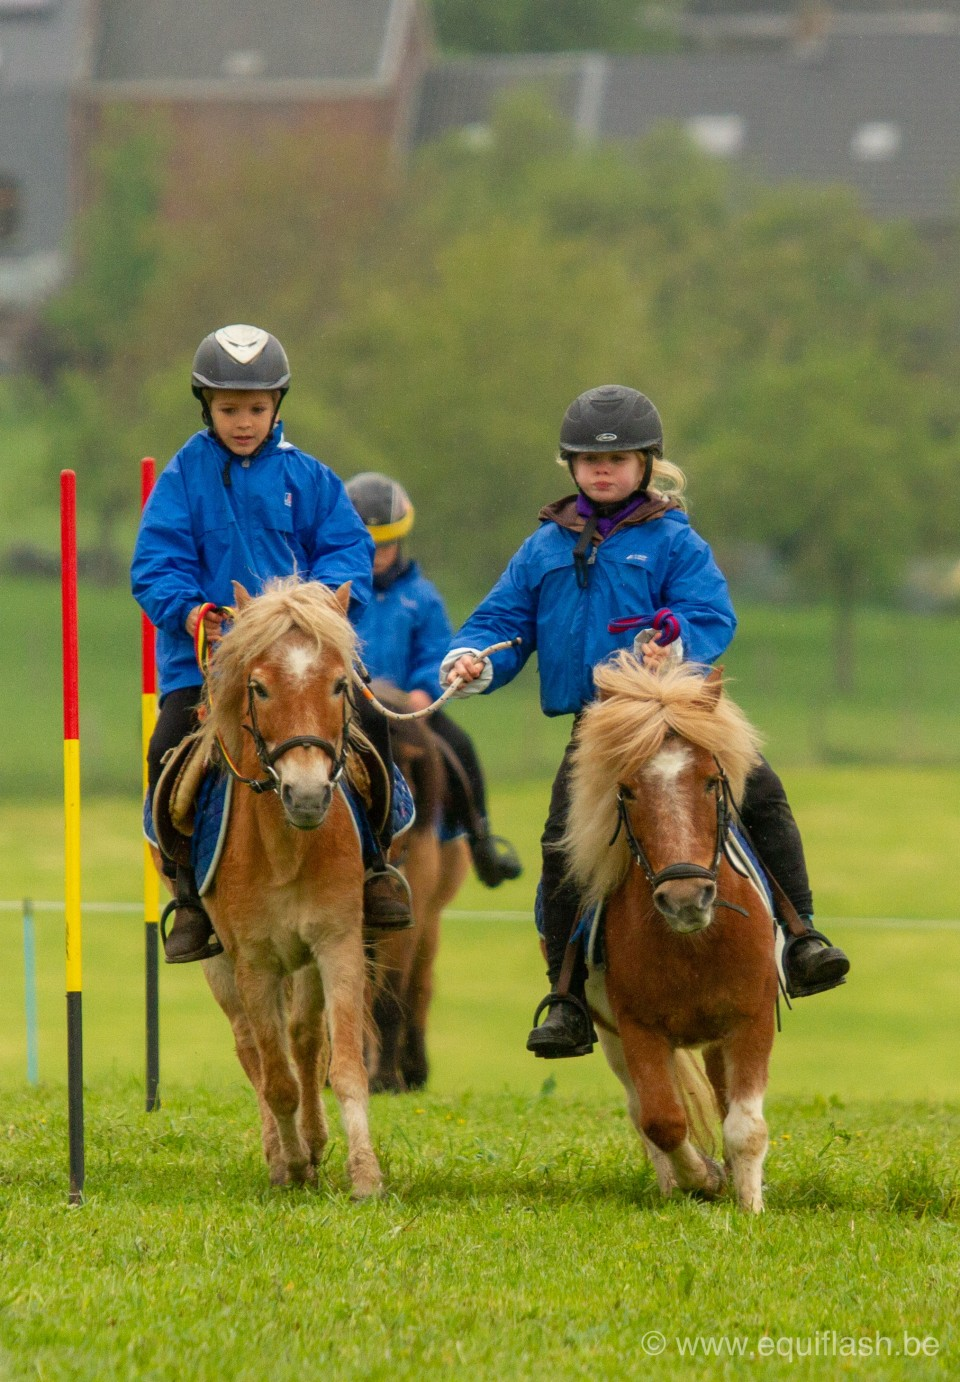 Minis du Rond-Puits - Pony Games @Equiflash.be